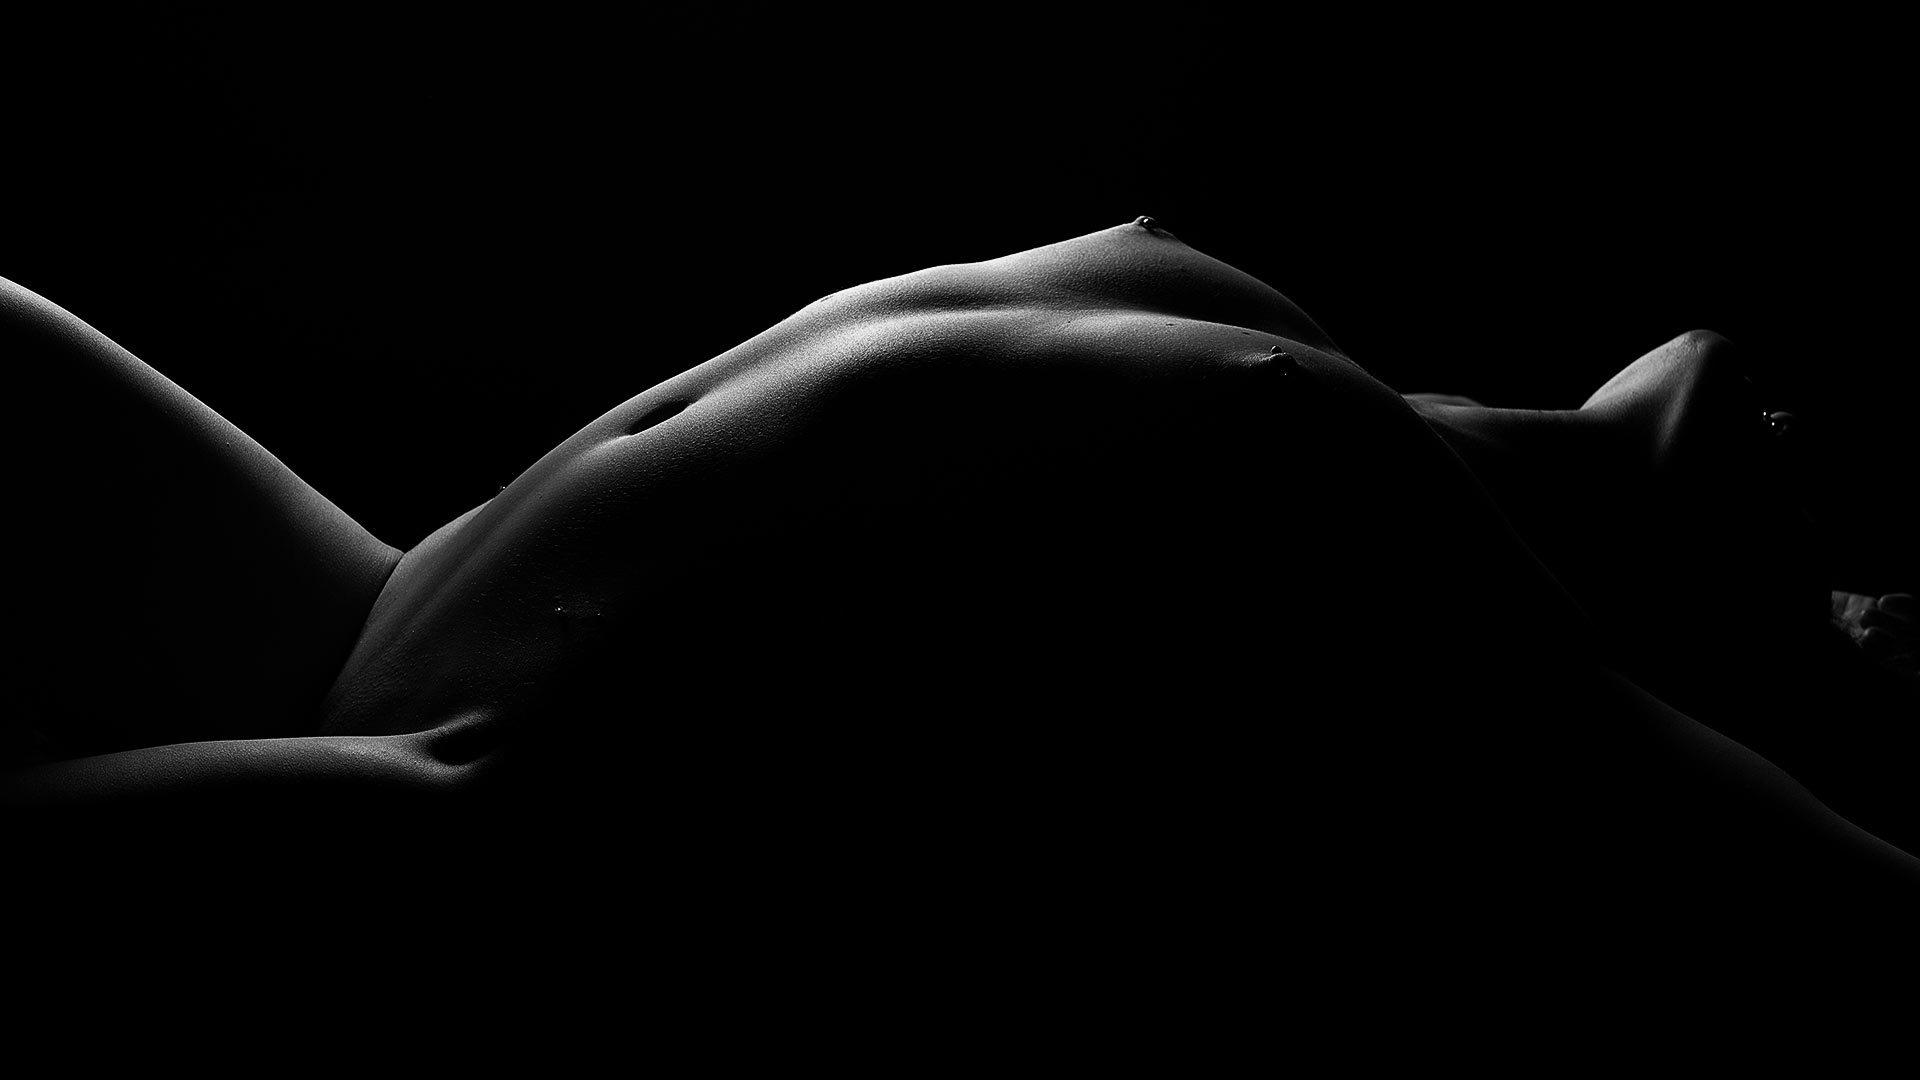 black-and-white-photography-erotic-nude-do-cock-ring-work-hard